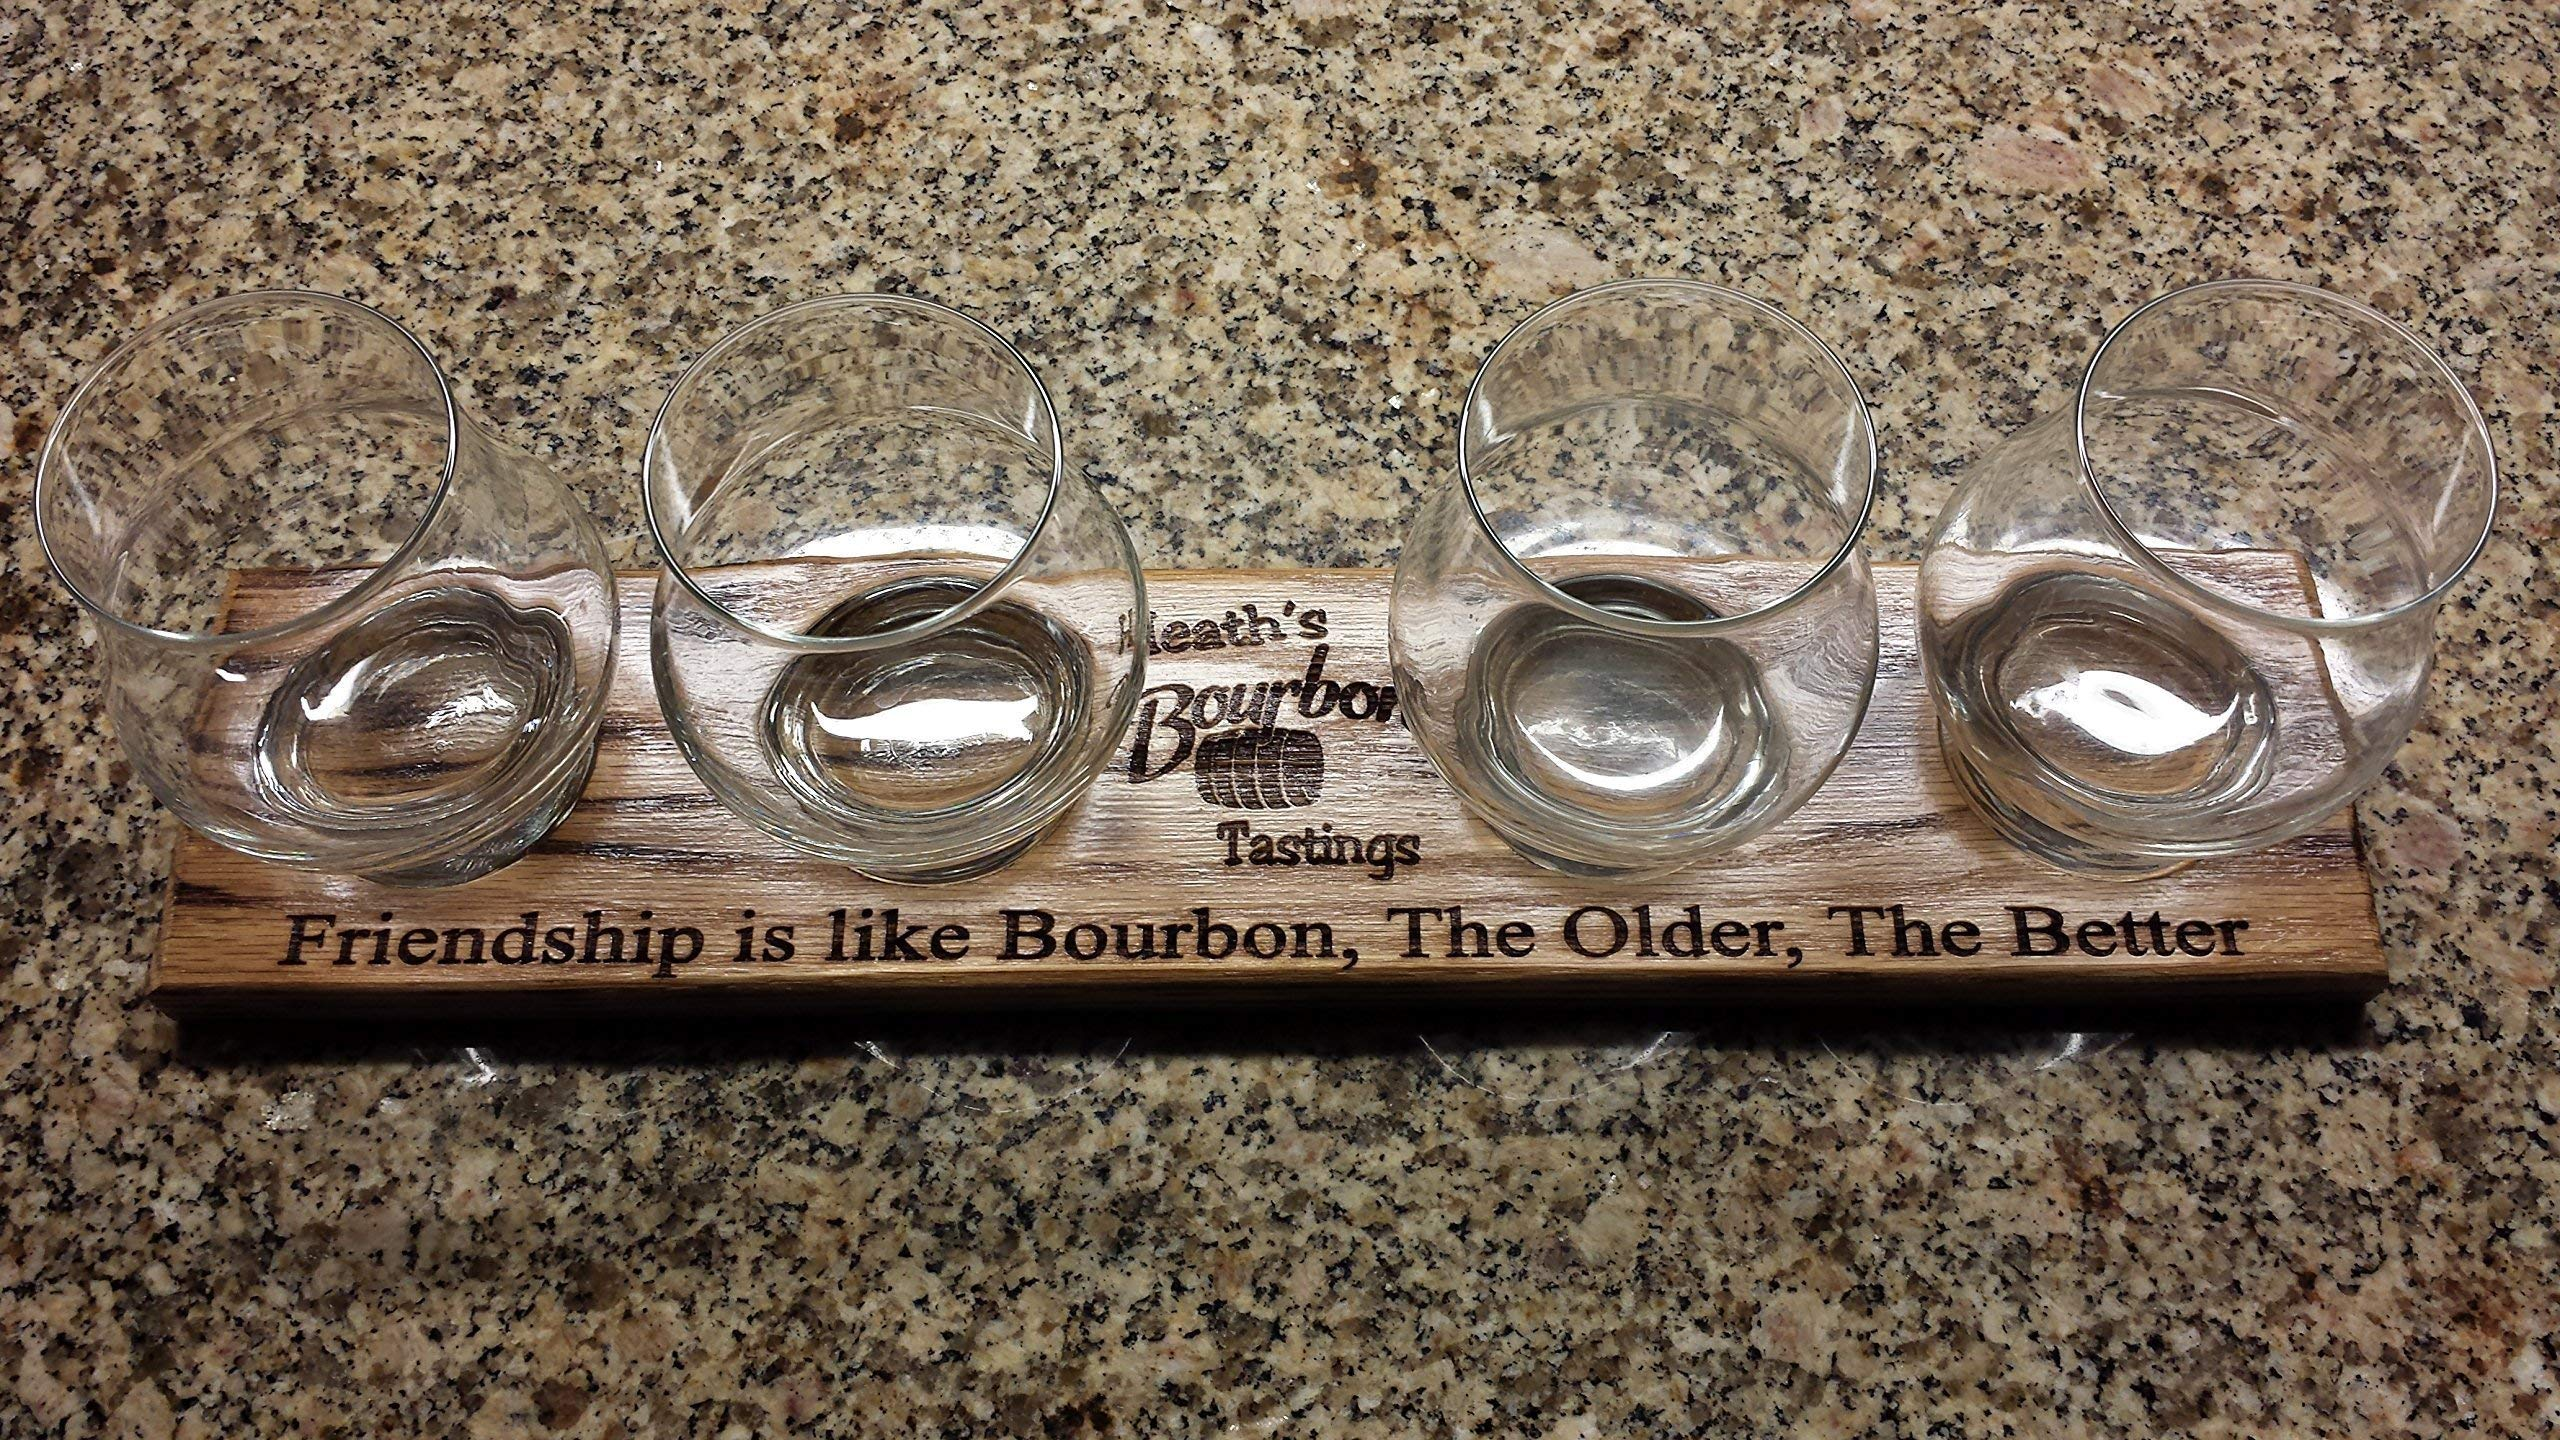 Laser Engraved Personalized Oak Bourbon Tasting Tray with glasses by Precision Wood Carving (Image #5)